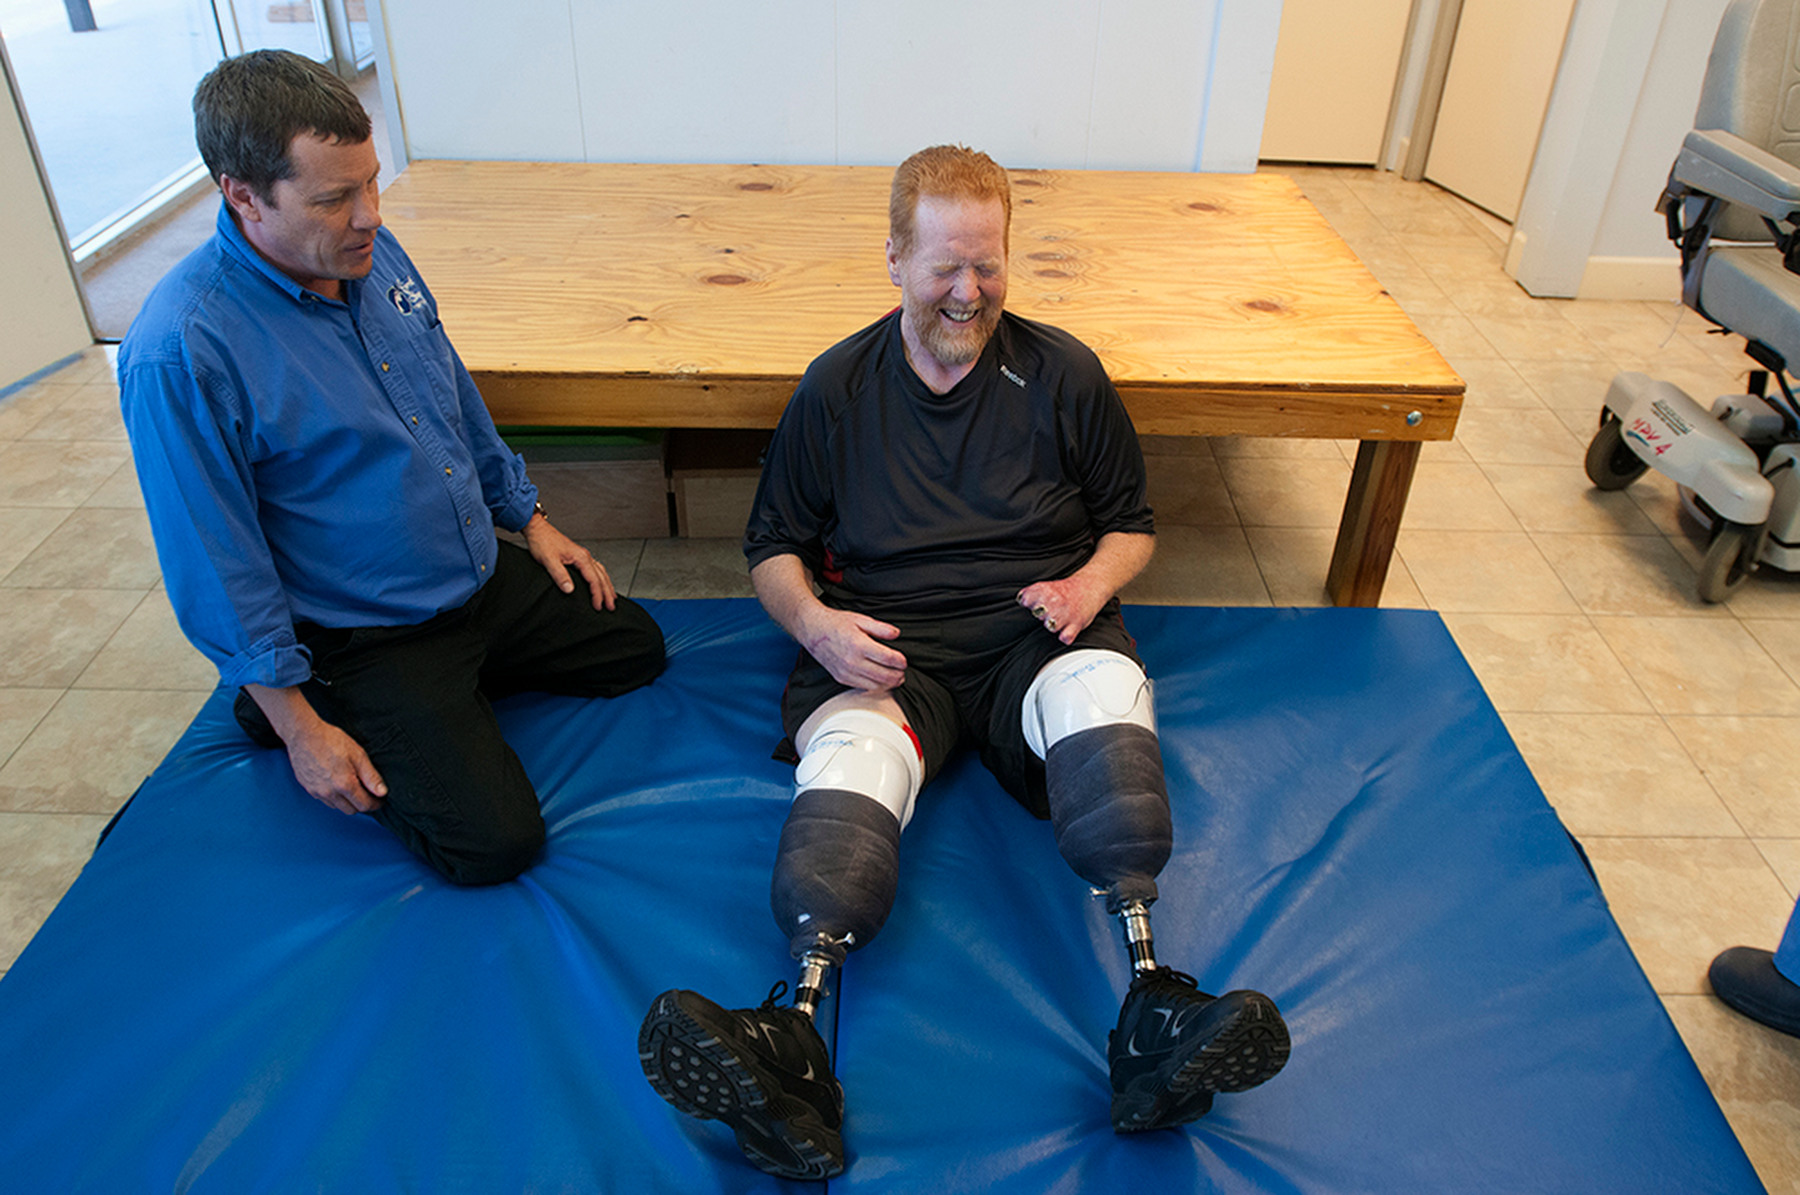 Third Place | Multiple PhotosMike Spencer, The Wilmington Star-NewsPhysical Therapist Tim Marahrens looks on as Lee Spearman laughs while trying to get up from the floor at First Step Therapy in Wilmington, N.C., April 3, 2014. Lee Spearman was hospitalized in December of 2013 with an infection that was ravaging his body and almost took his life and resulted in having both of his legs amputated below the knee and all the fingers on his left hand.